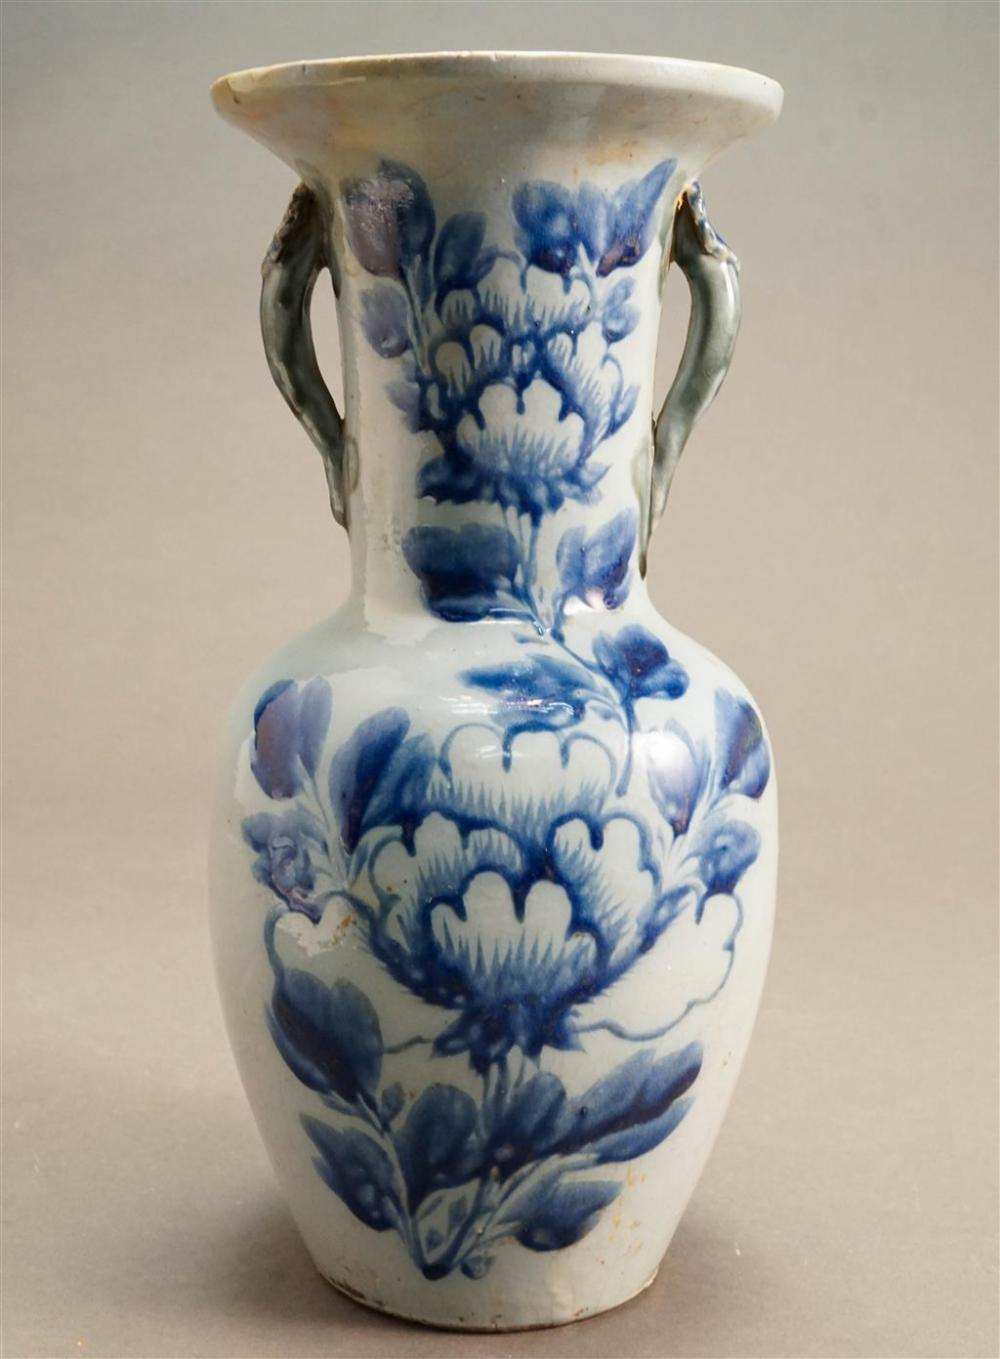 Delft Blue Floral Decorated Two-Handle Vase, H: 11-1/2 in